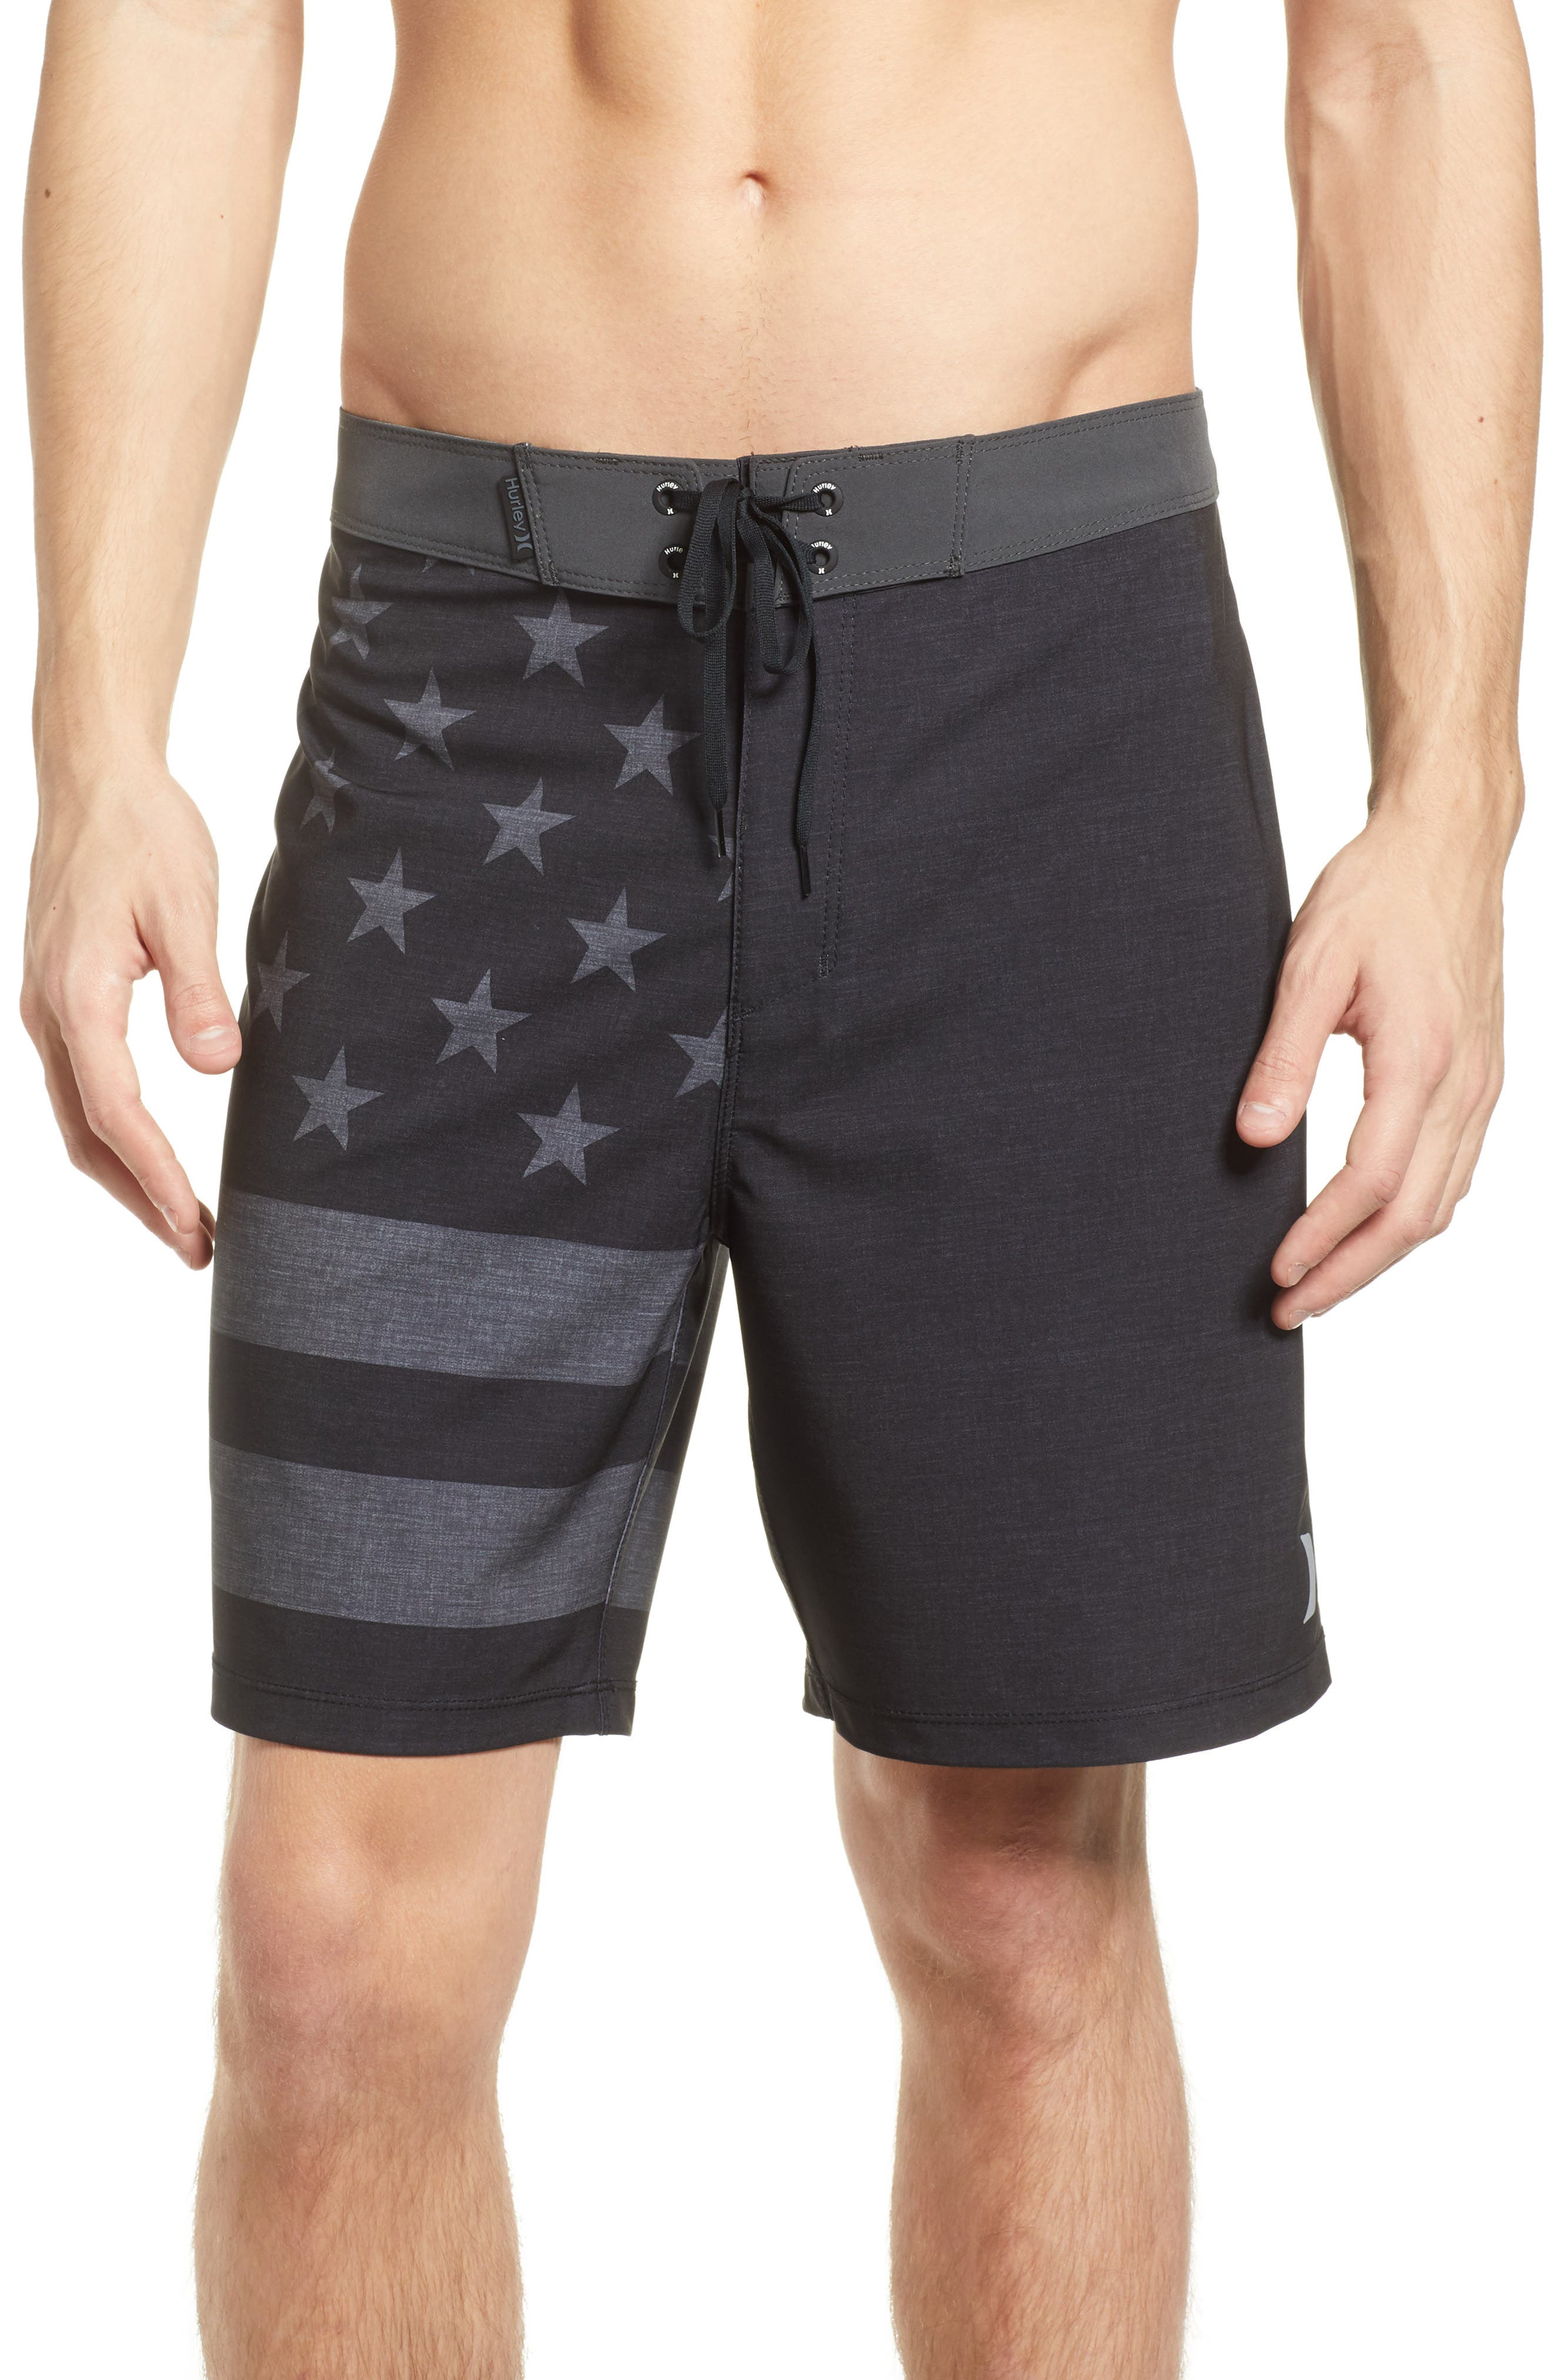 Phantom Cheers Board Shorts,                             Main thumbnail 1, color,                             Black